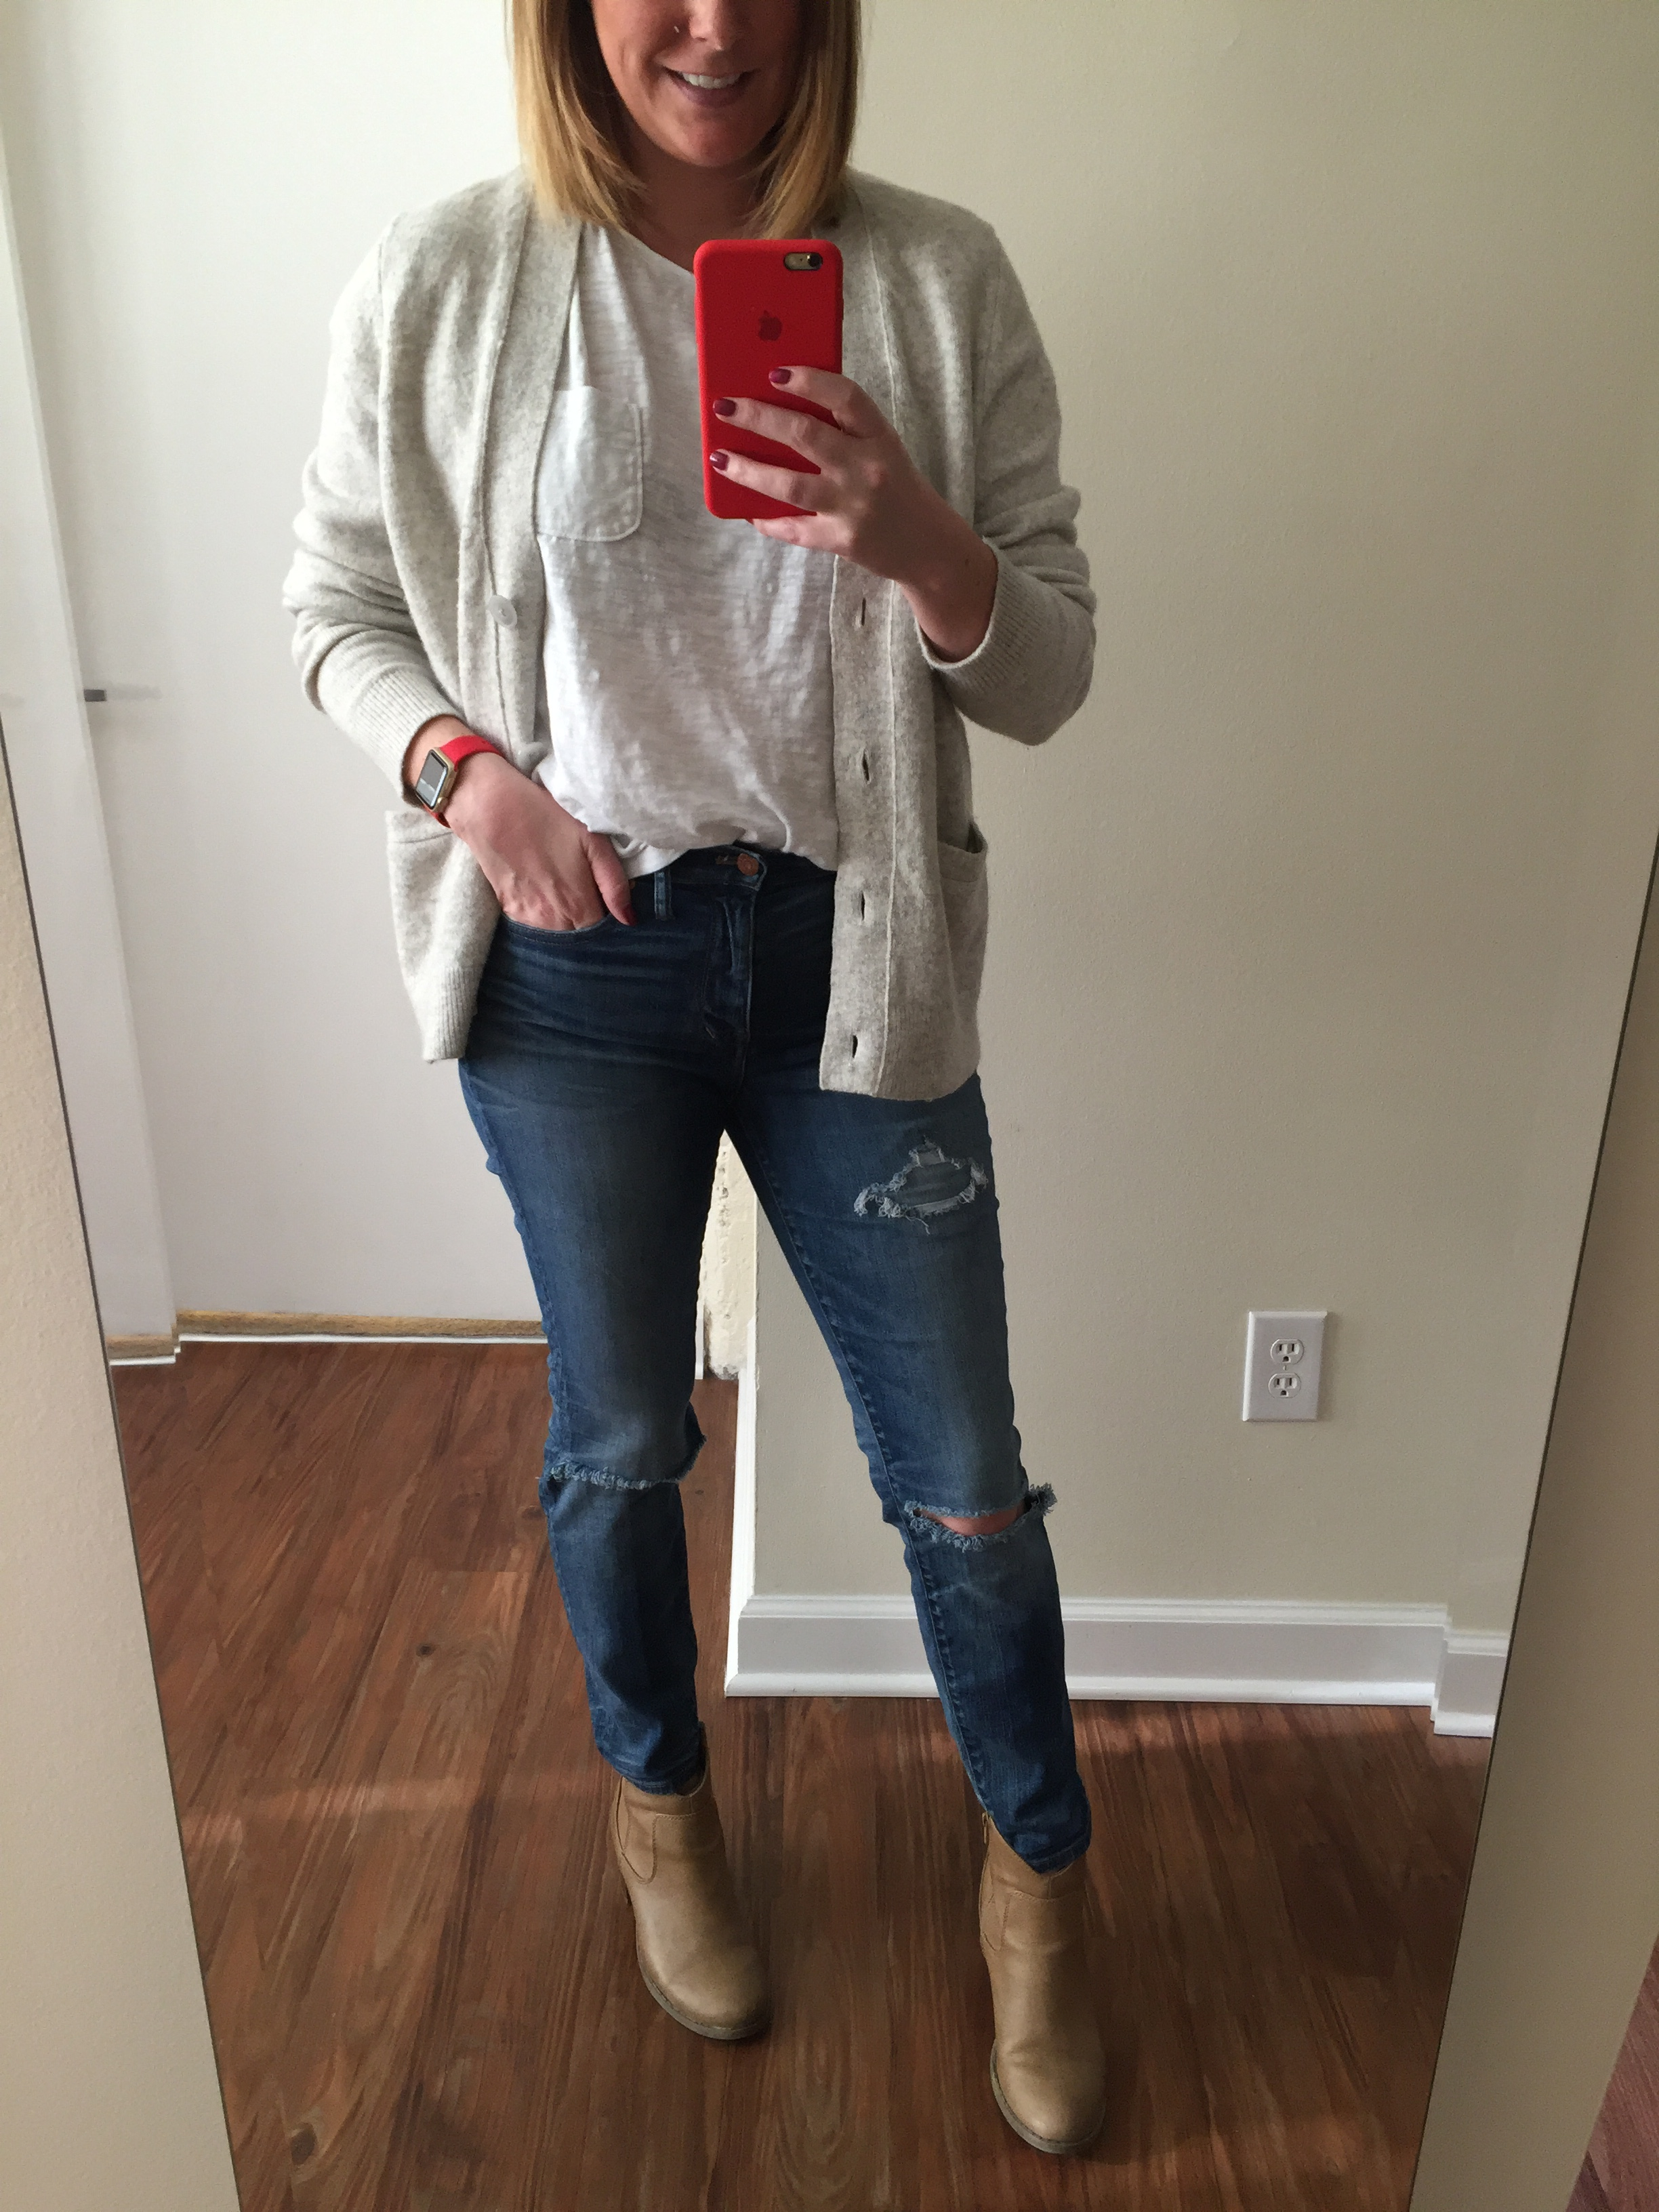 Cardigan: Loft, T-Shirt: Loft, Jeans: Madewell,  high riser skinny skinny , Booties: Old Navy, Watch: Apple,  38mm Gold Aluminum Case  (with Red Sport Band)